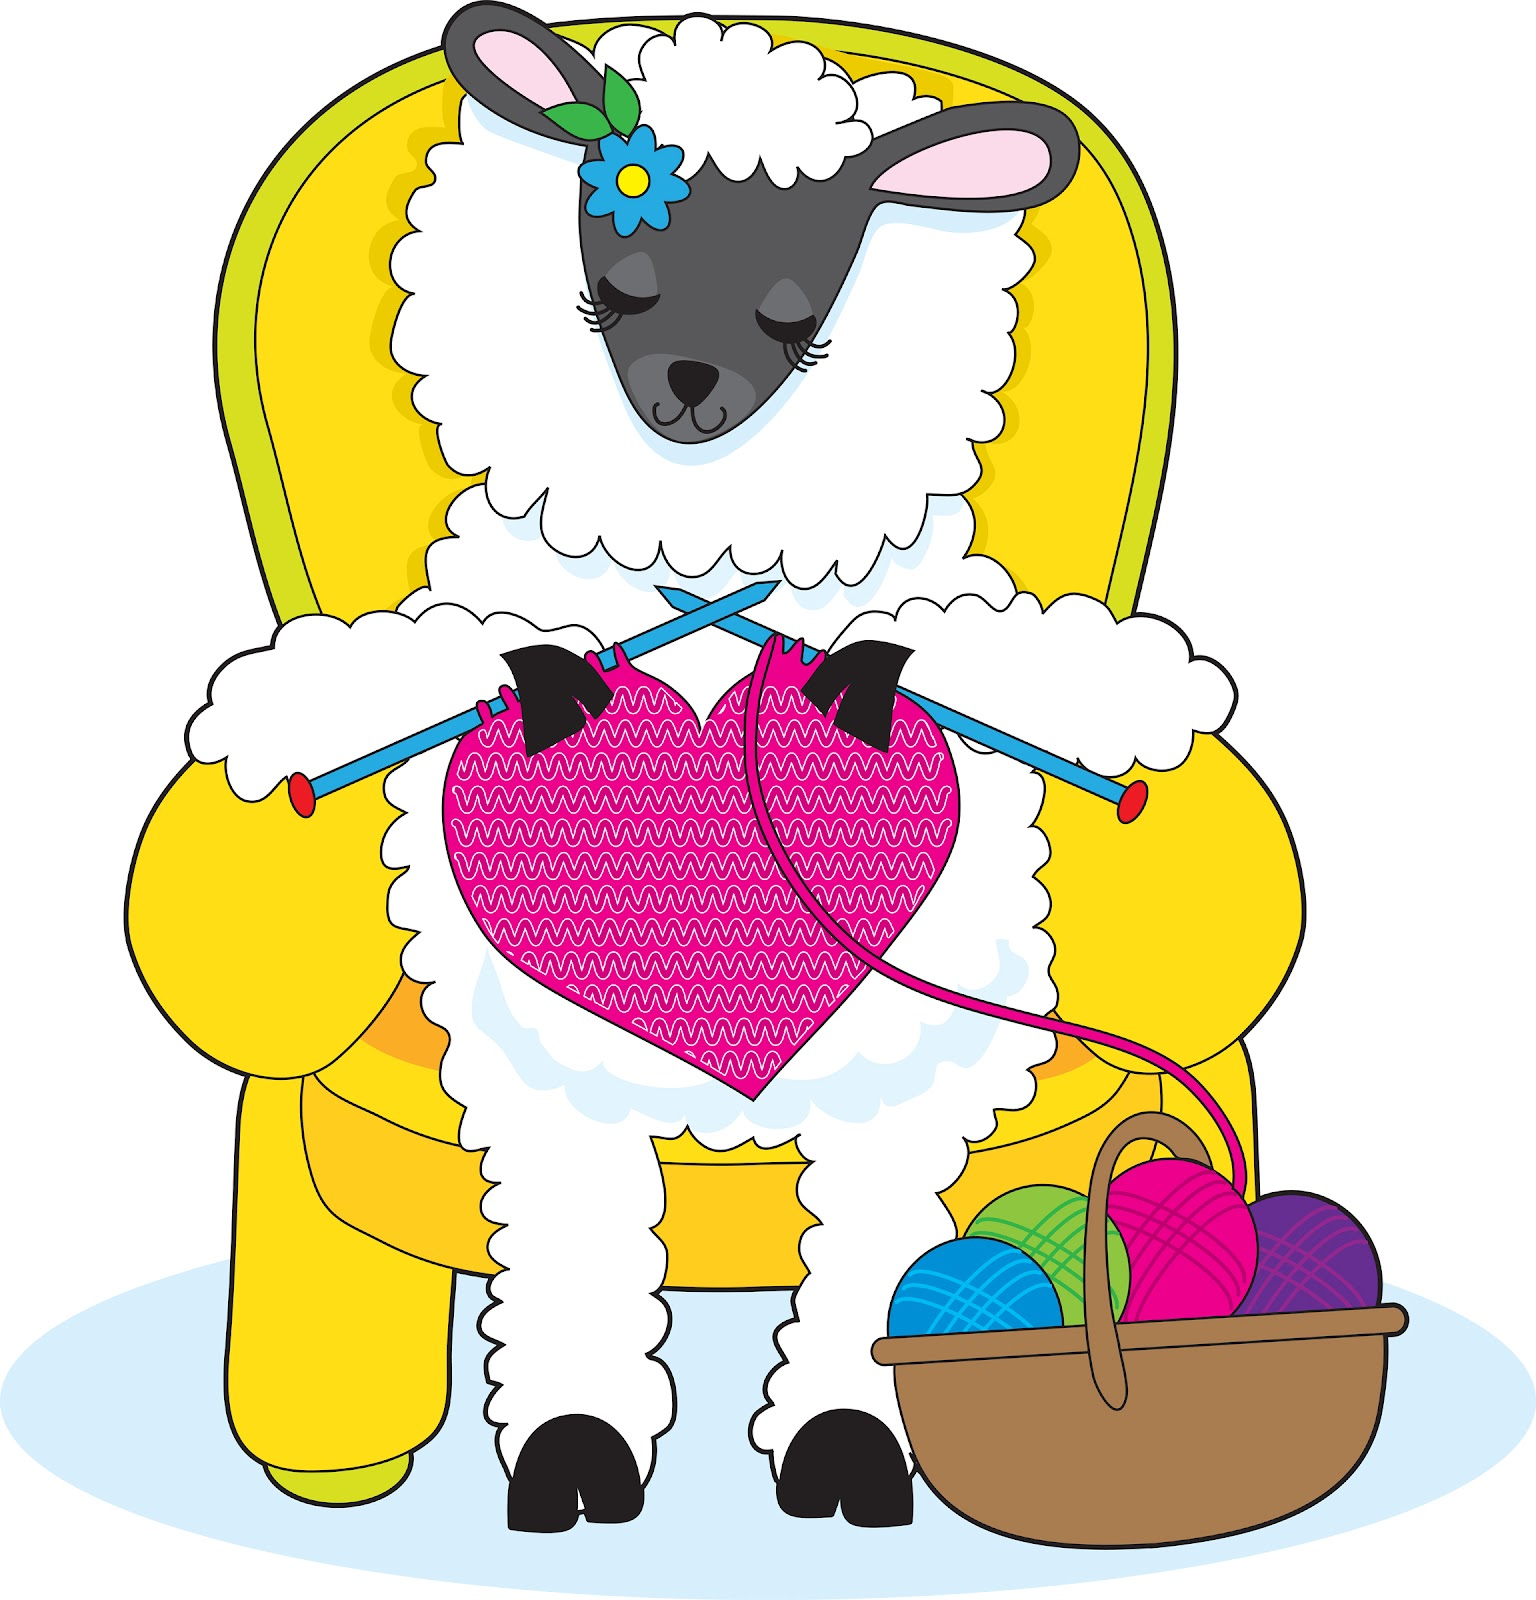 Knitting Sheep Clipart : Clip art sheep knitting spinning clipart suggest